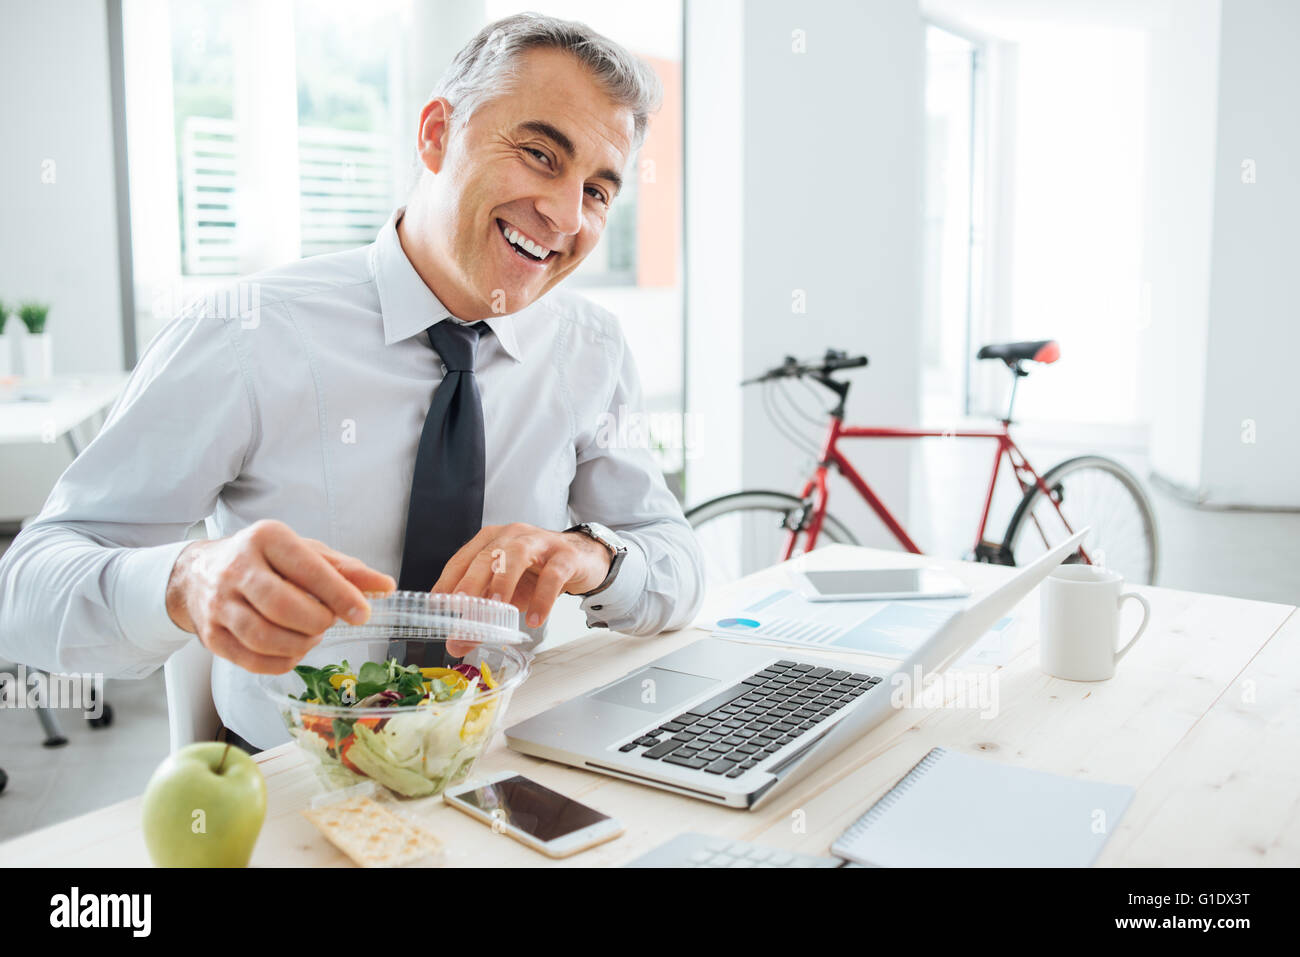 Happy businessman opening his salad pack and having a lunch break at office desk - Stock Image